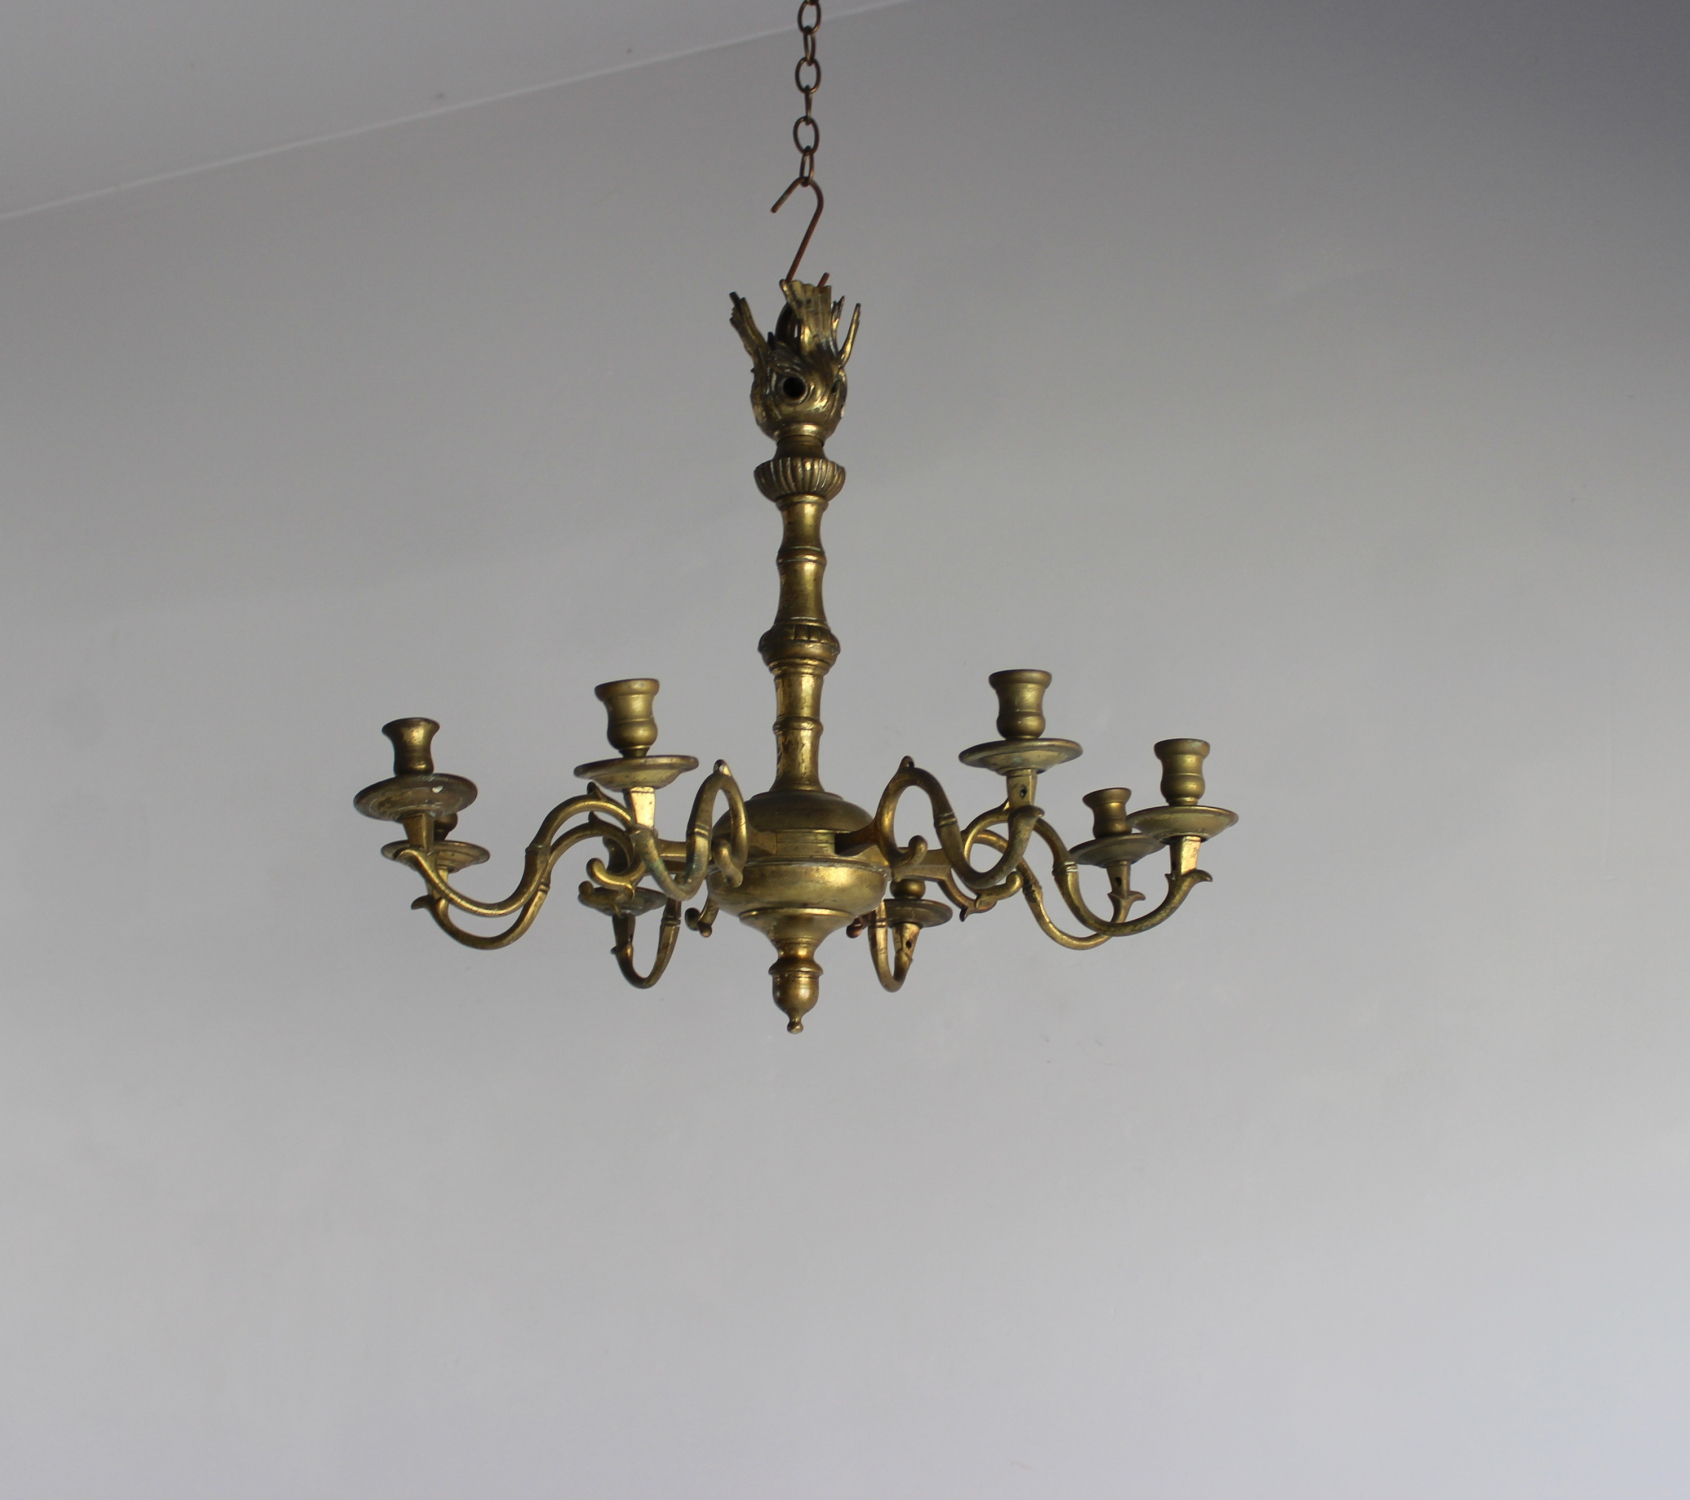 Antique Lighting- French chandeliers - image 6